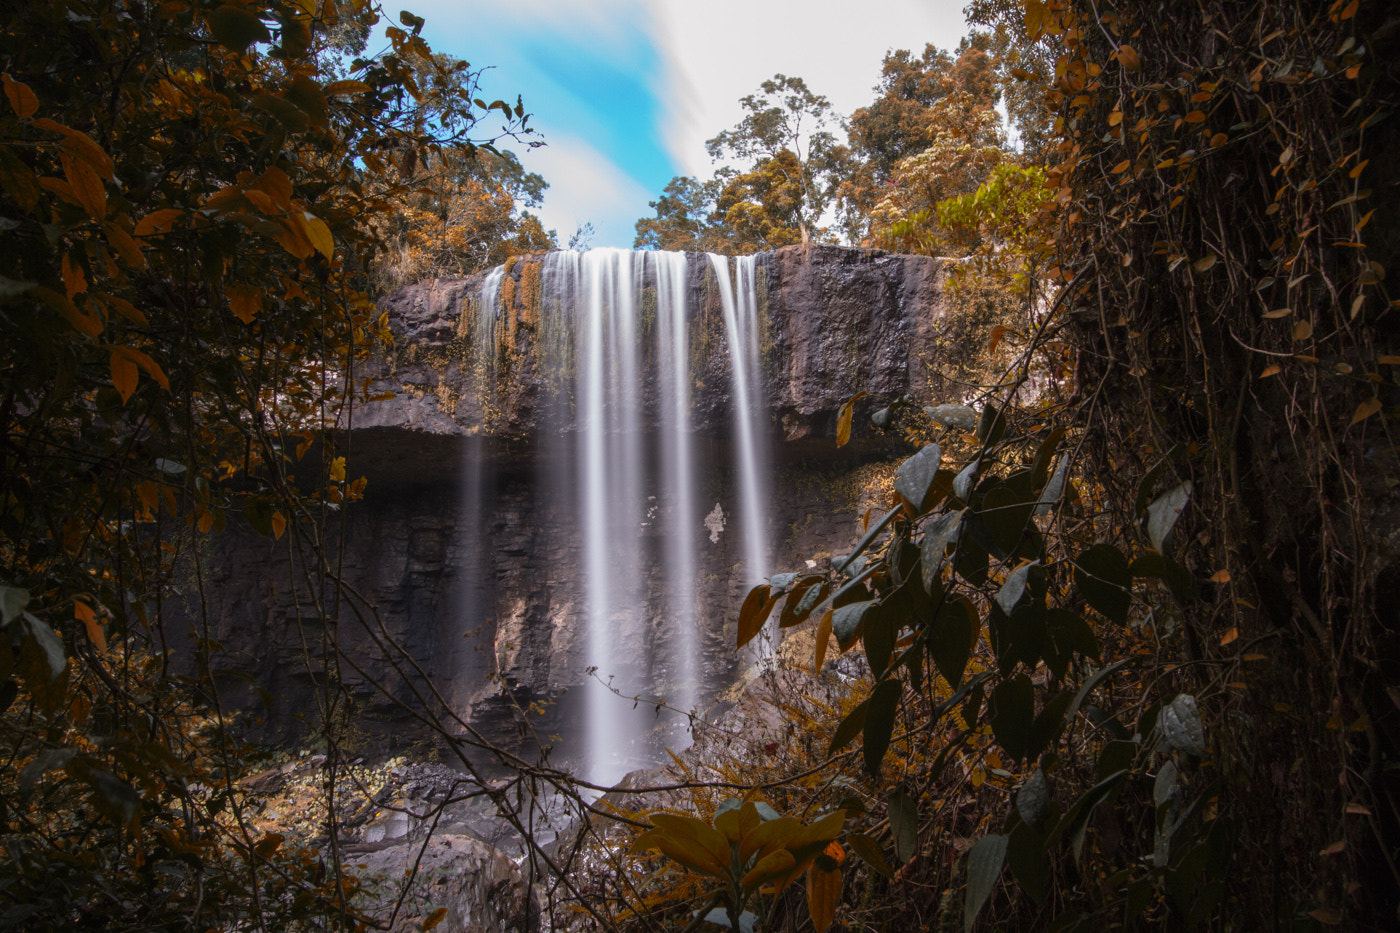 Photograph Elinjaa Falls in the Atherton Tablelands by Hans Fischer on 500px